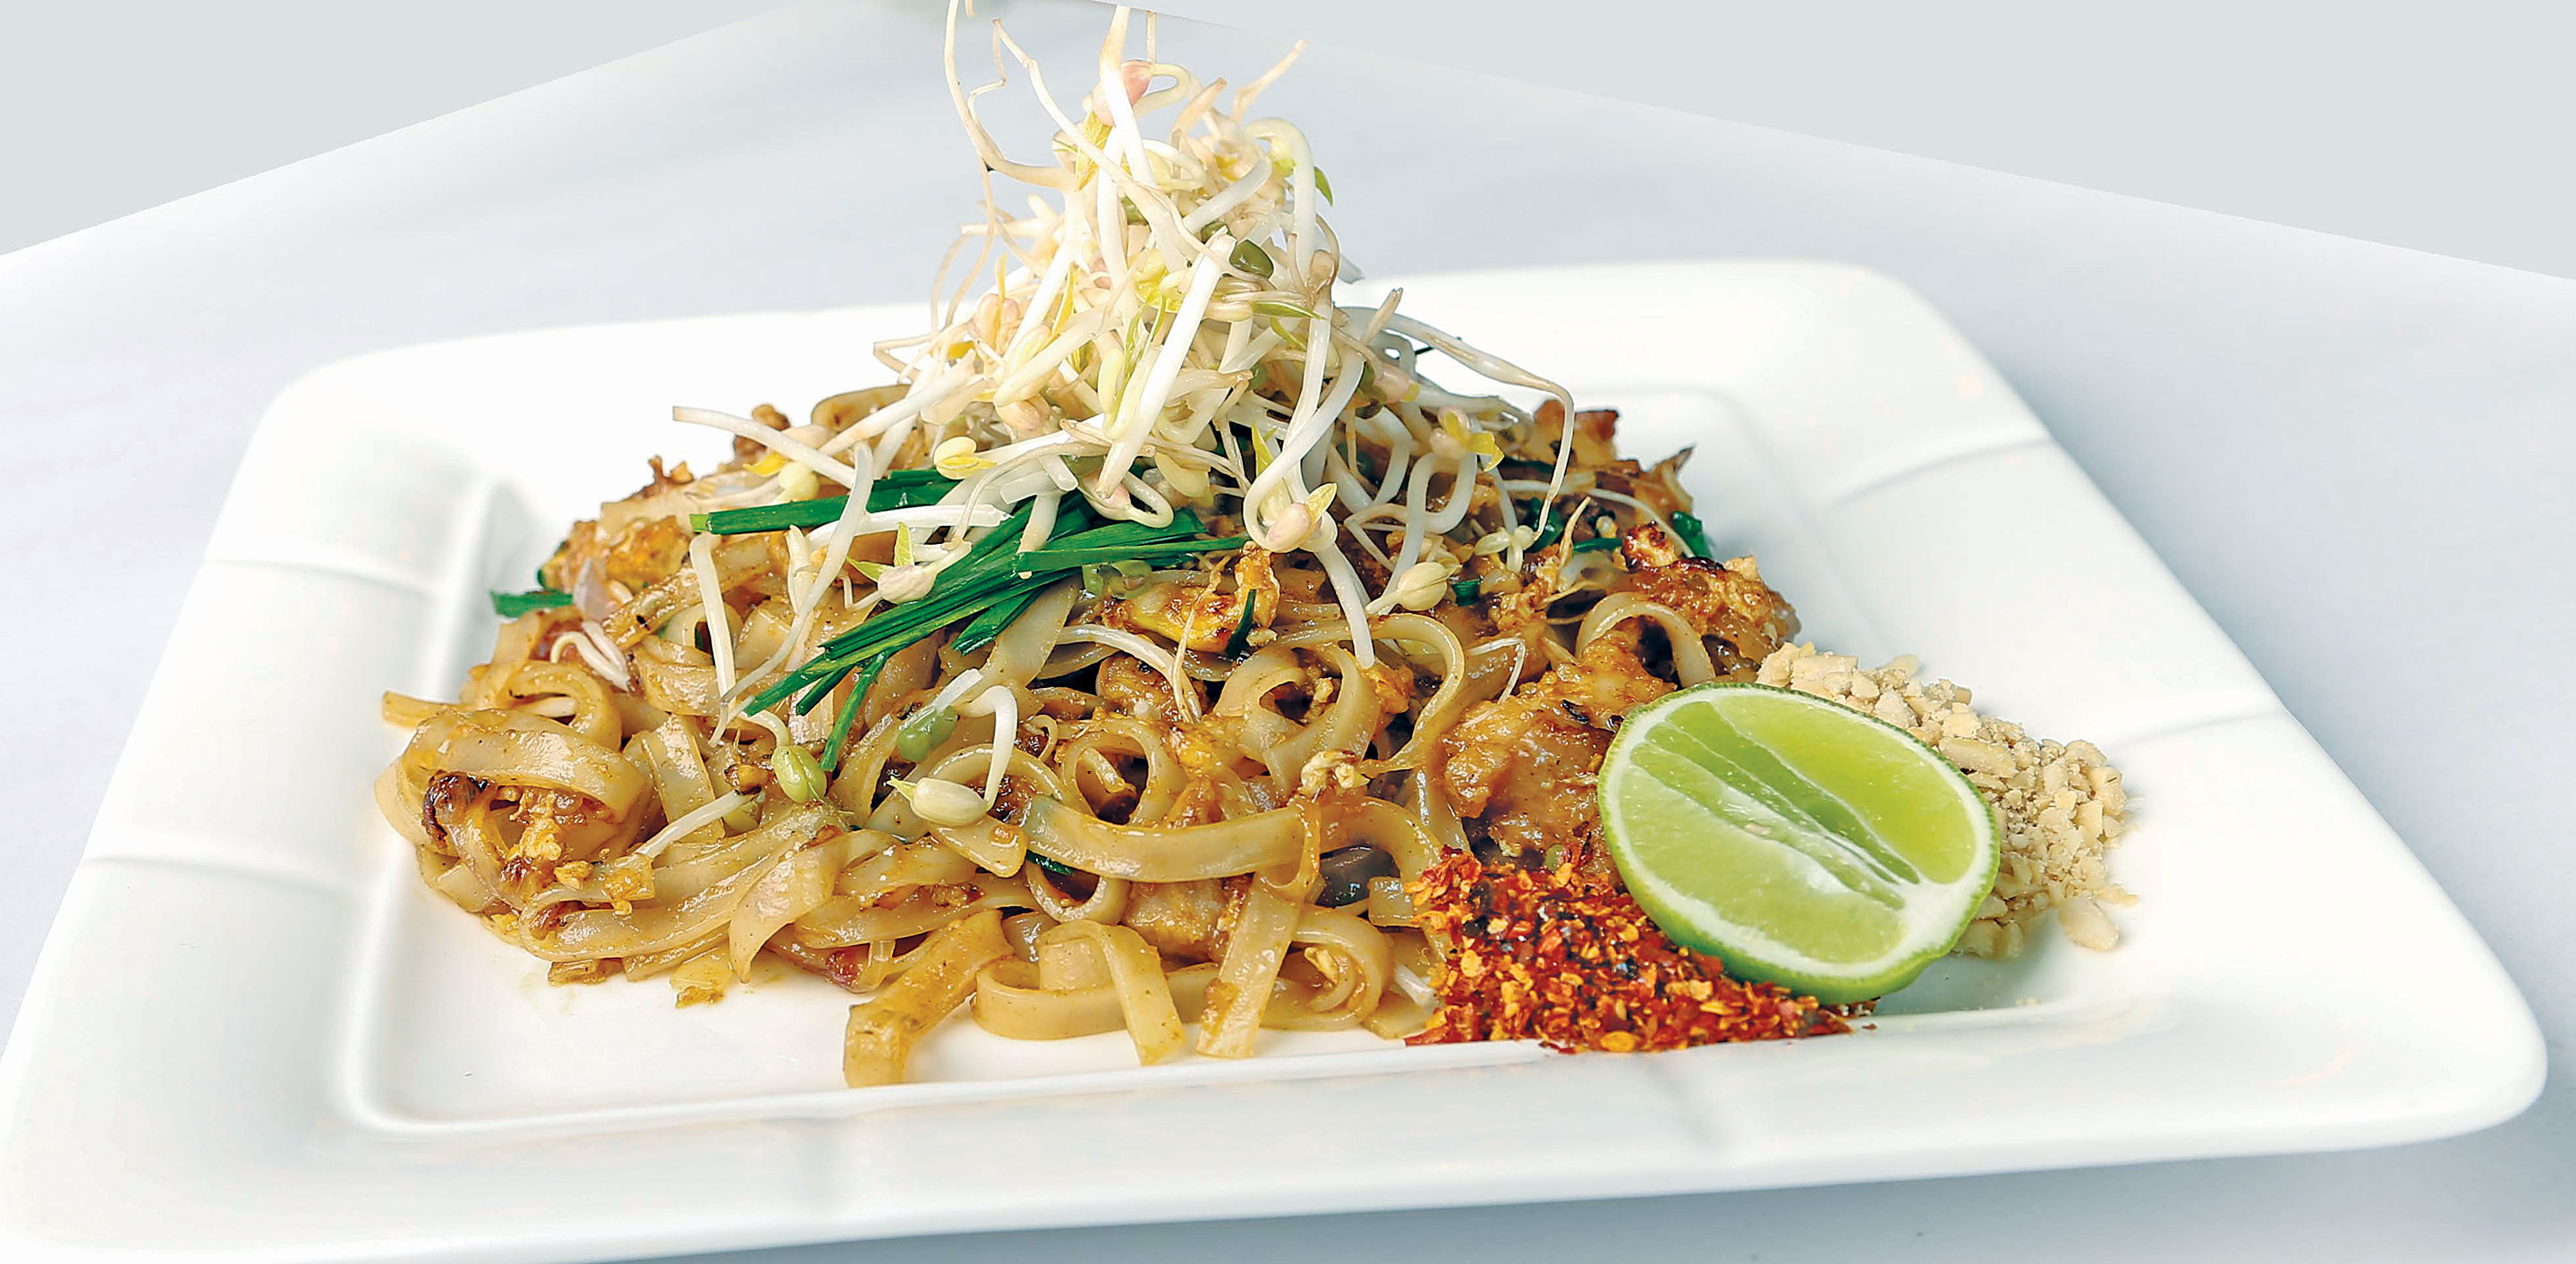 Thai Cuisine with a Twist at Mango Chili